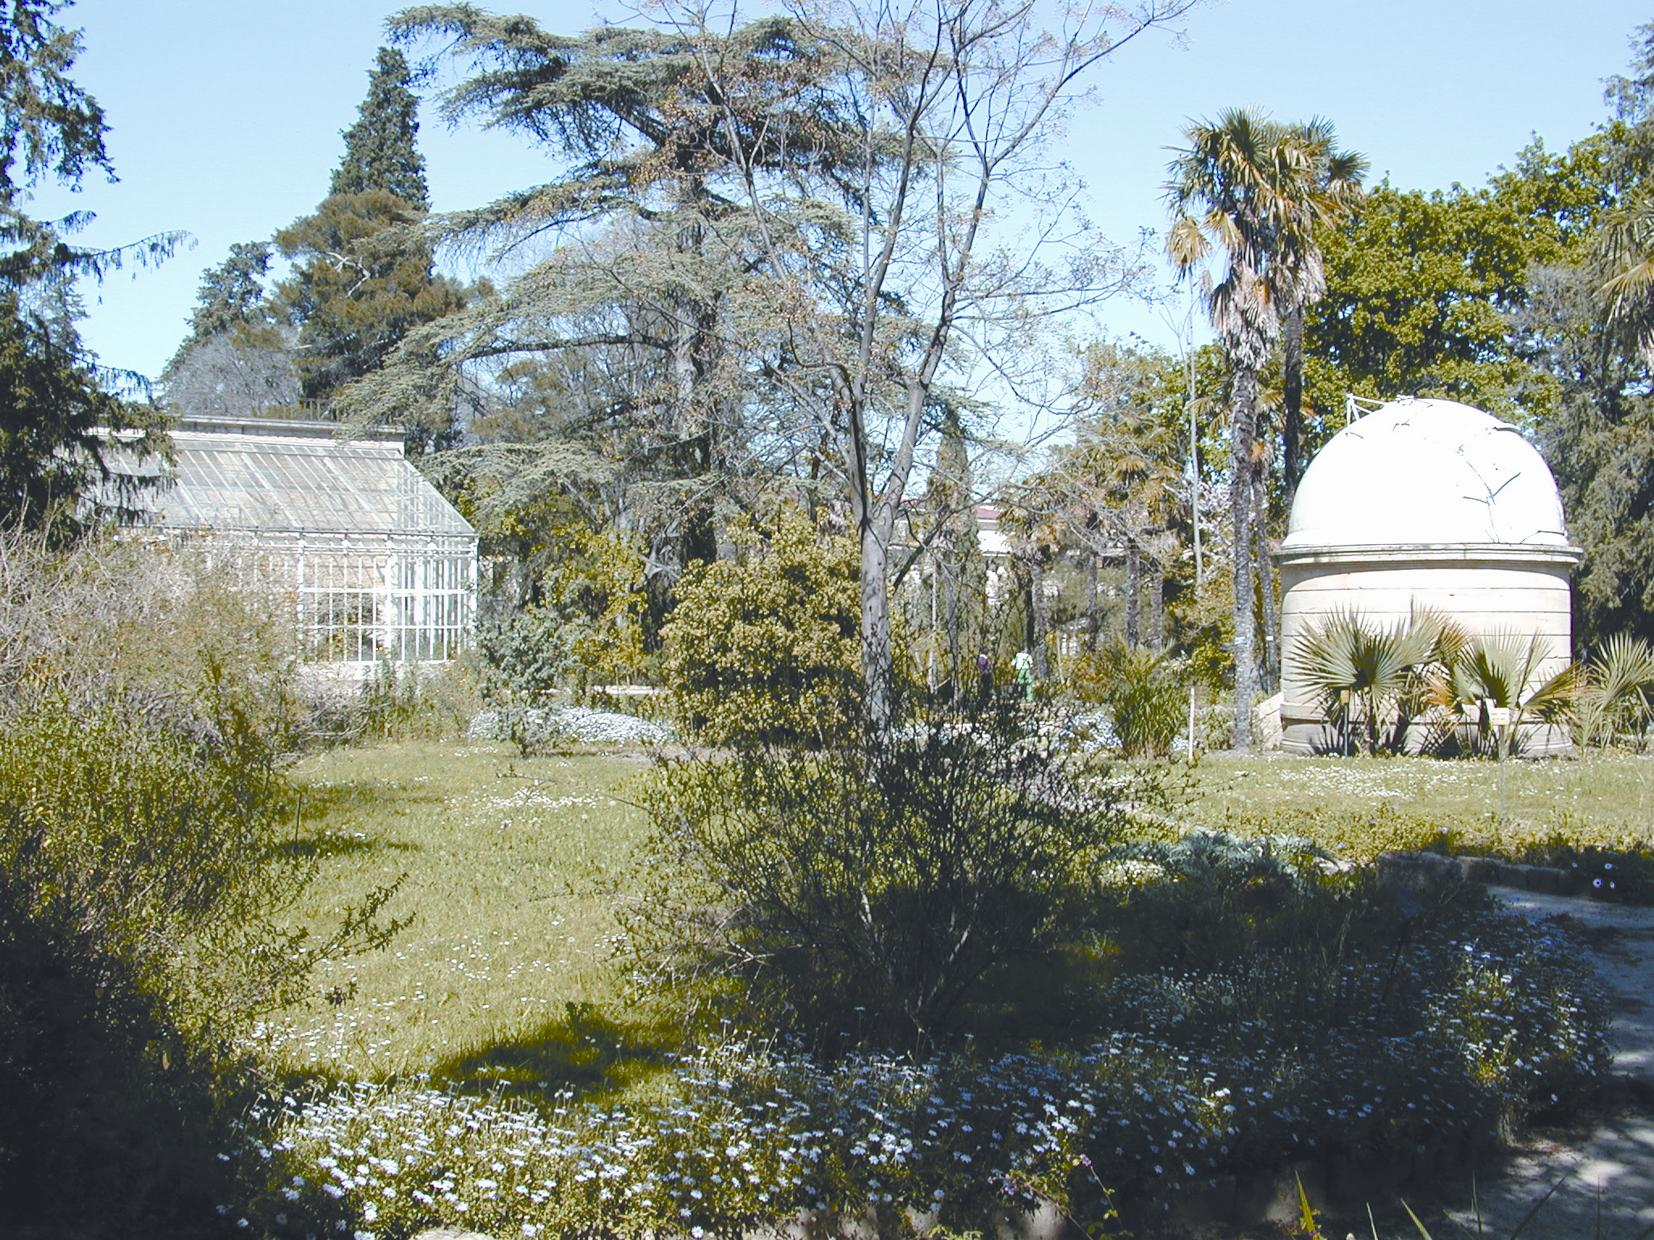 jardin des plantes de montpellier. Black Bedroom Furniture Sets. Home Design Ideas